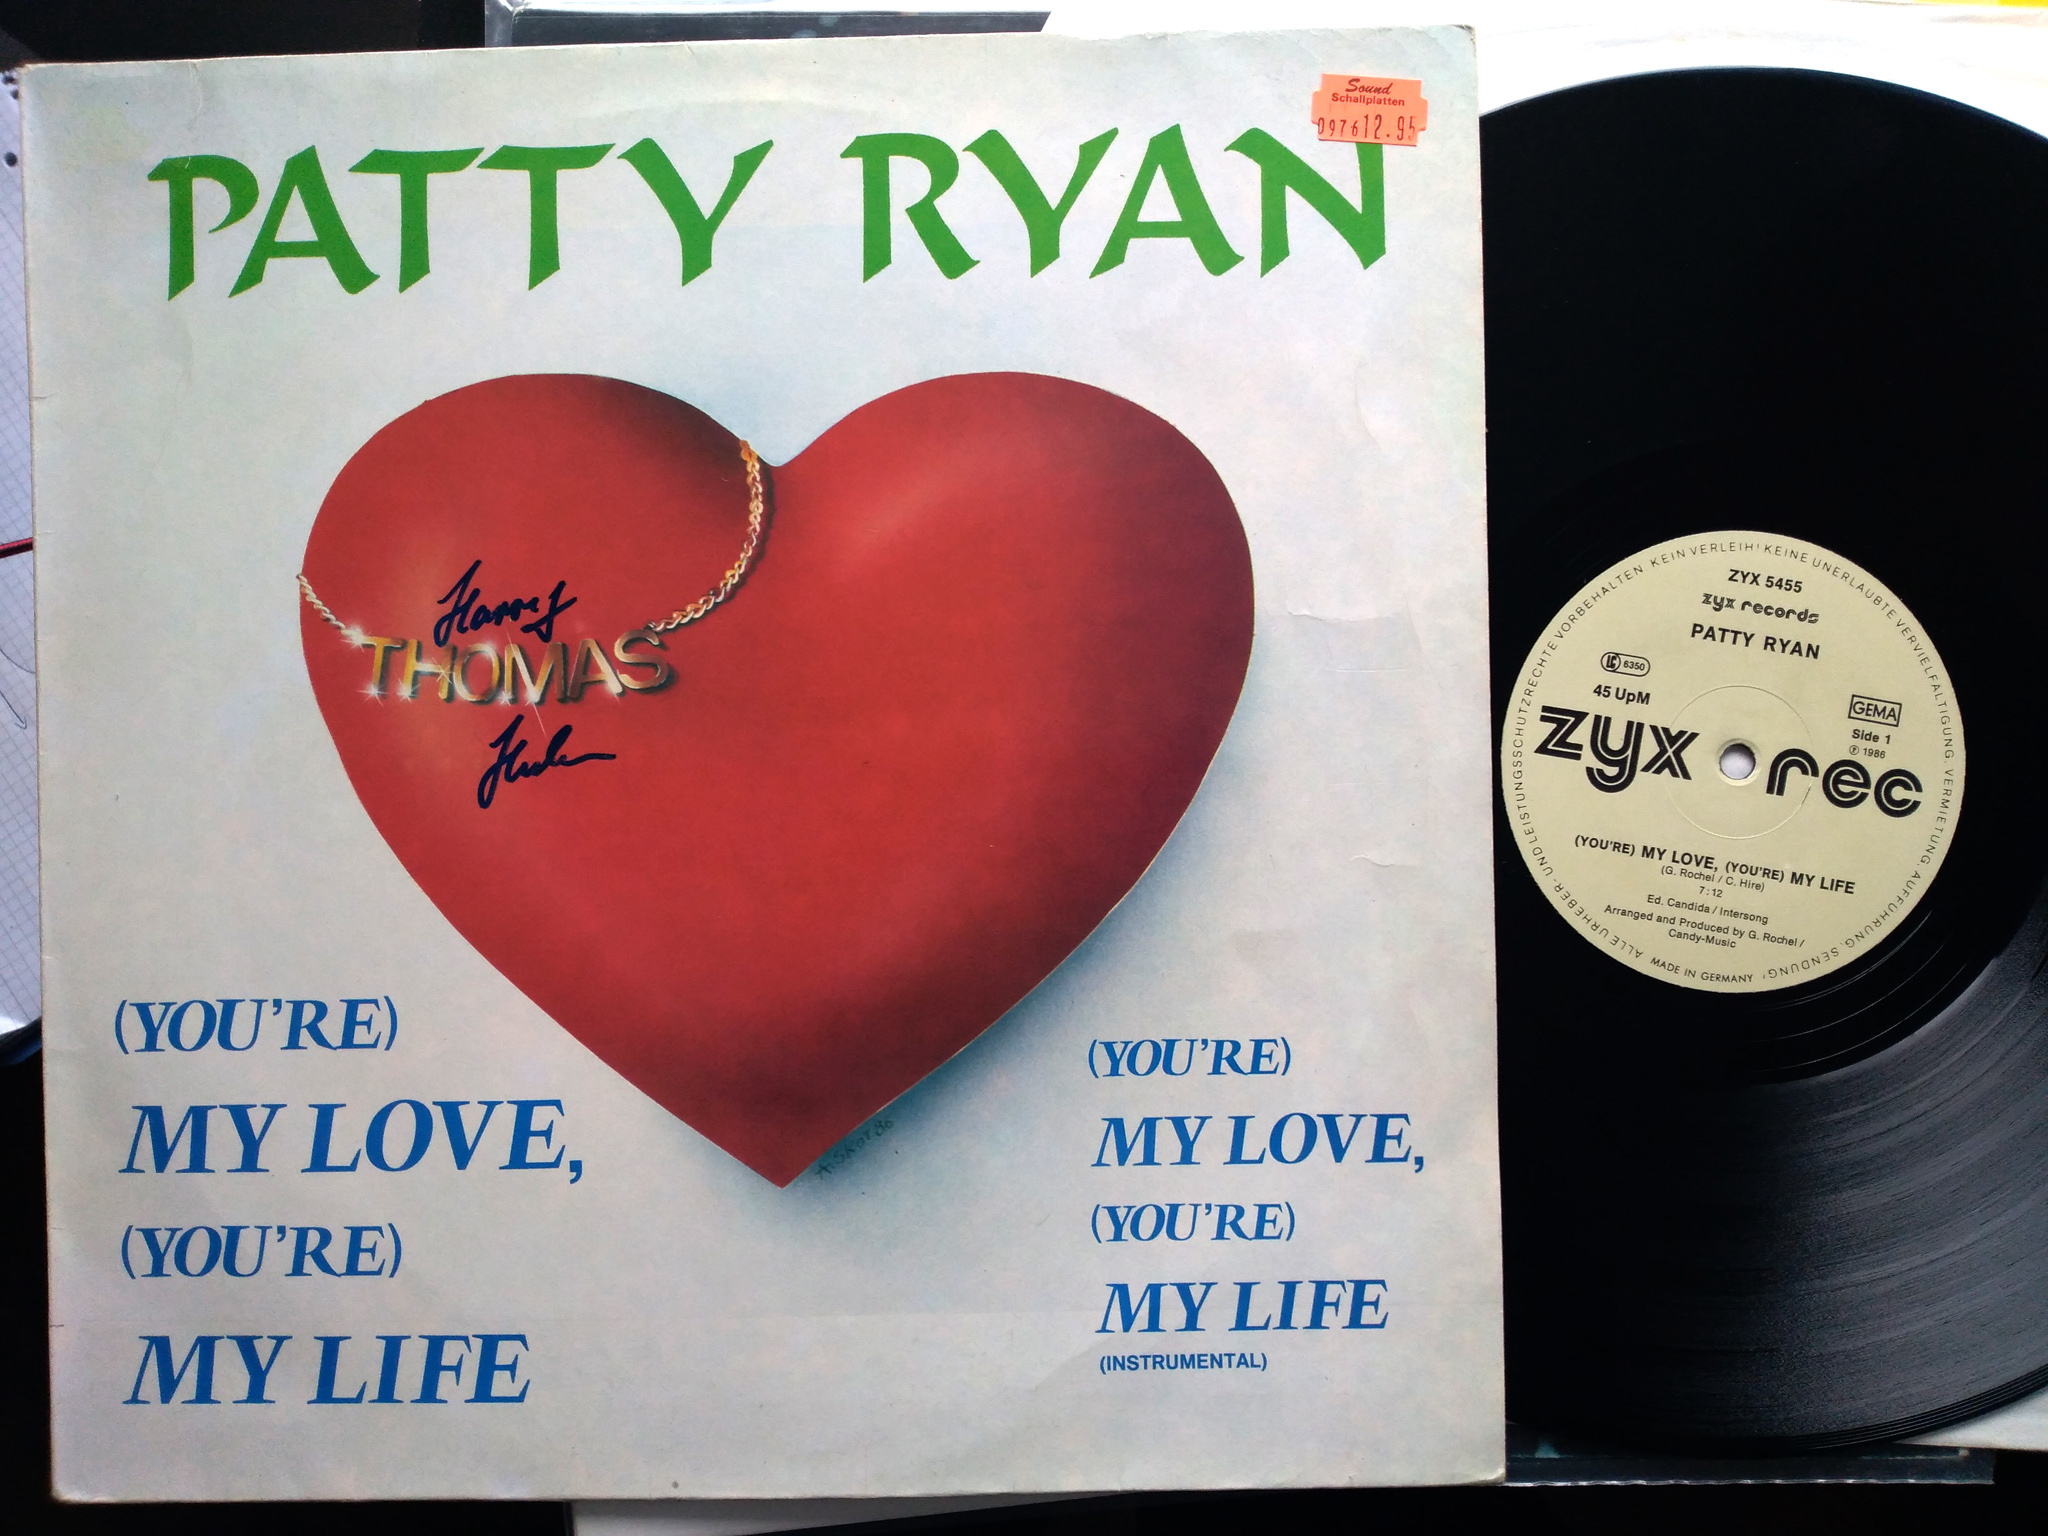 Patty Ryan - You're My Love, You're My Life